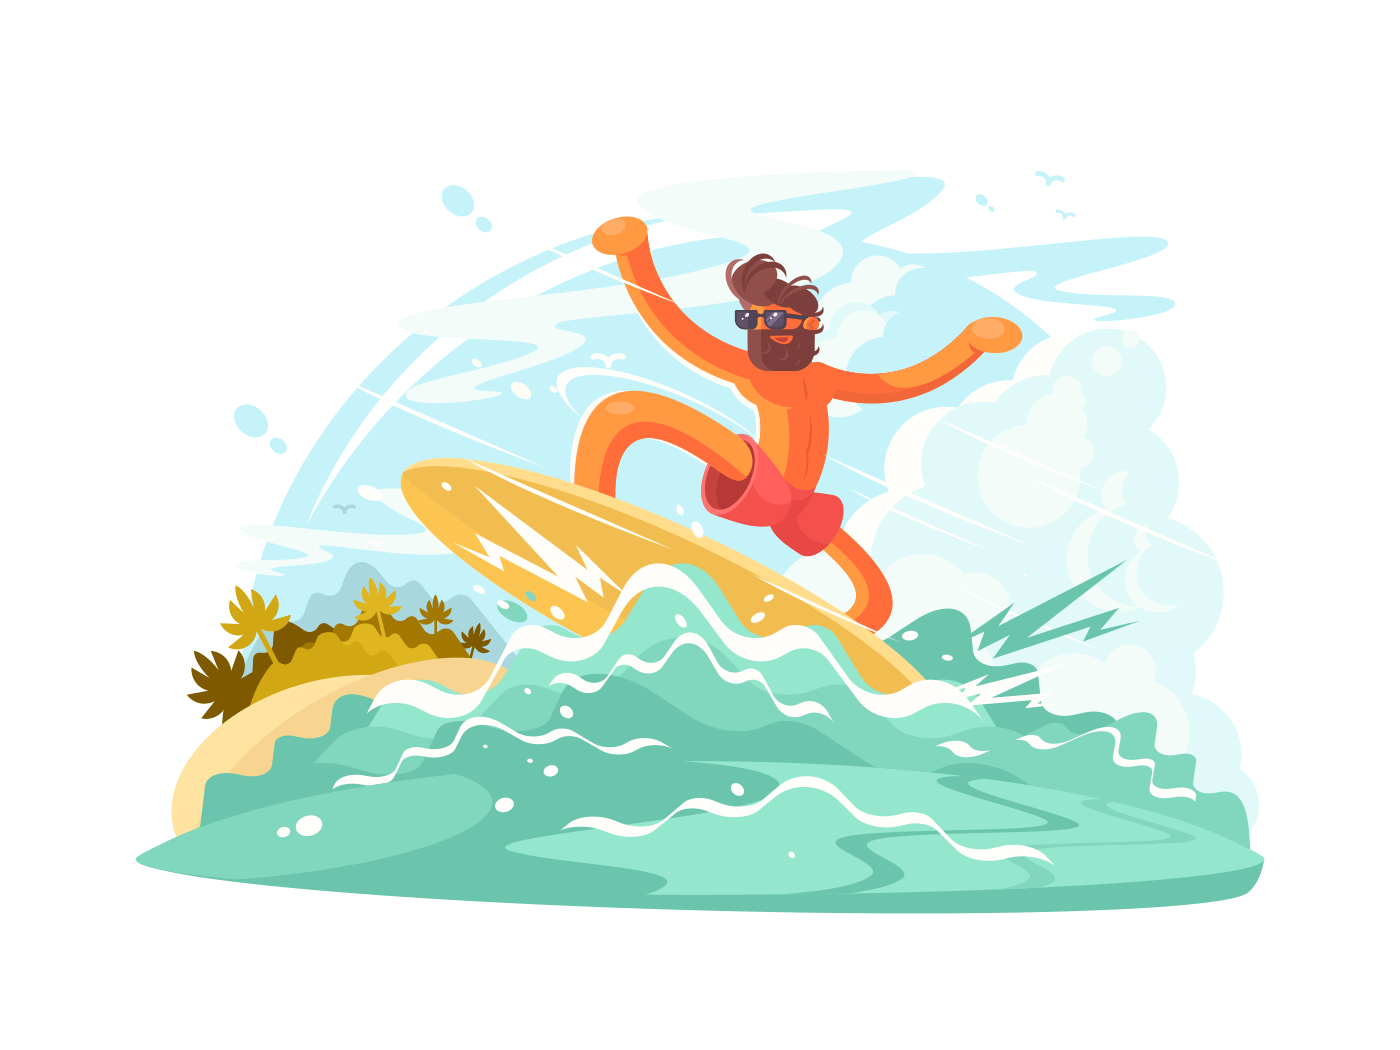 Surfer guy in sunglass illustration